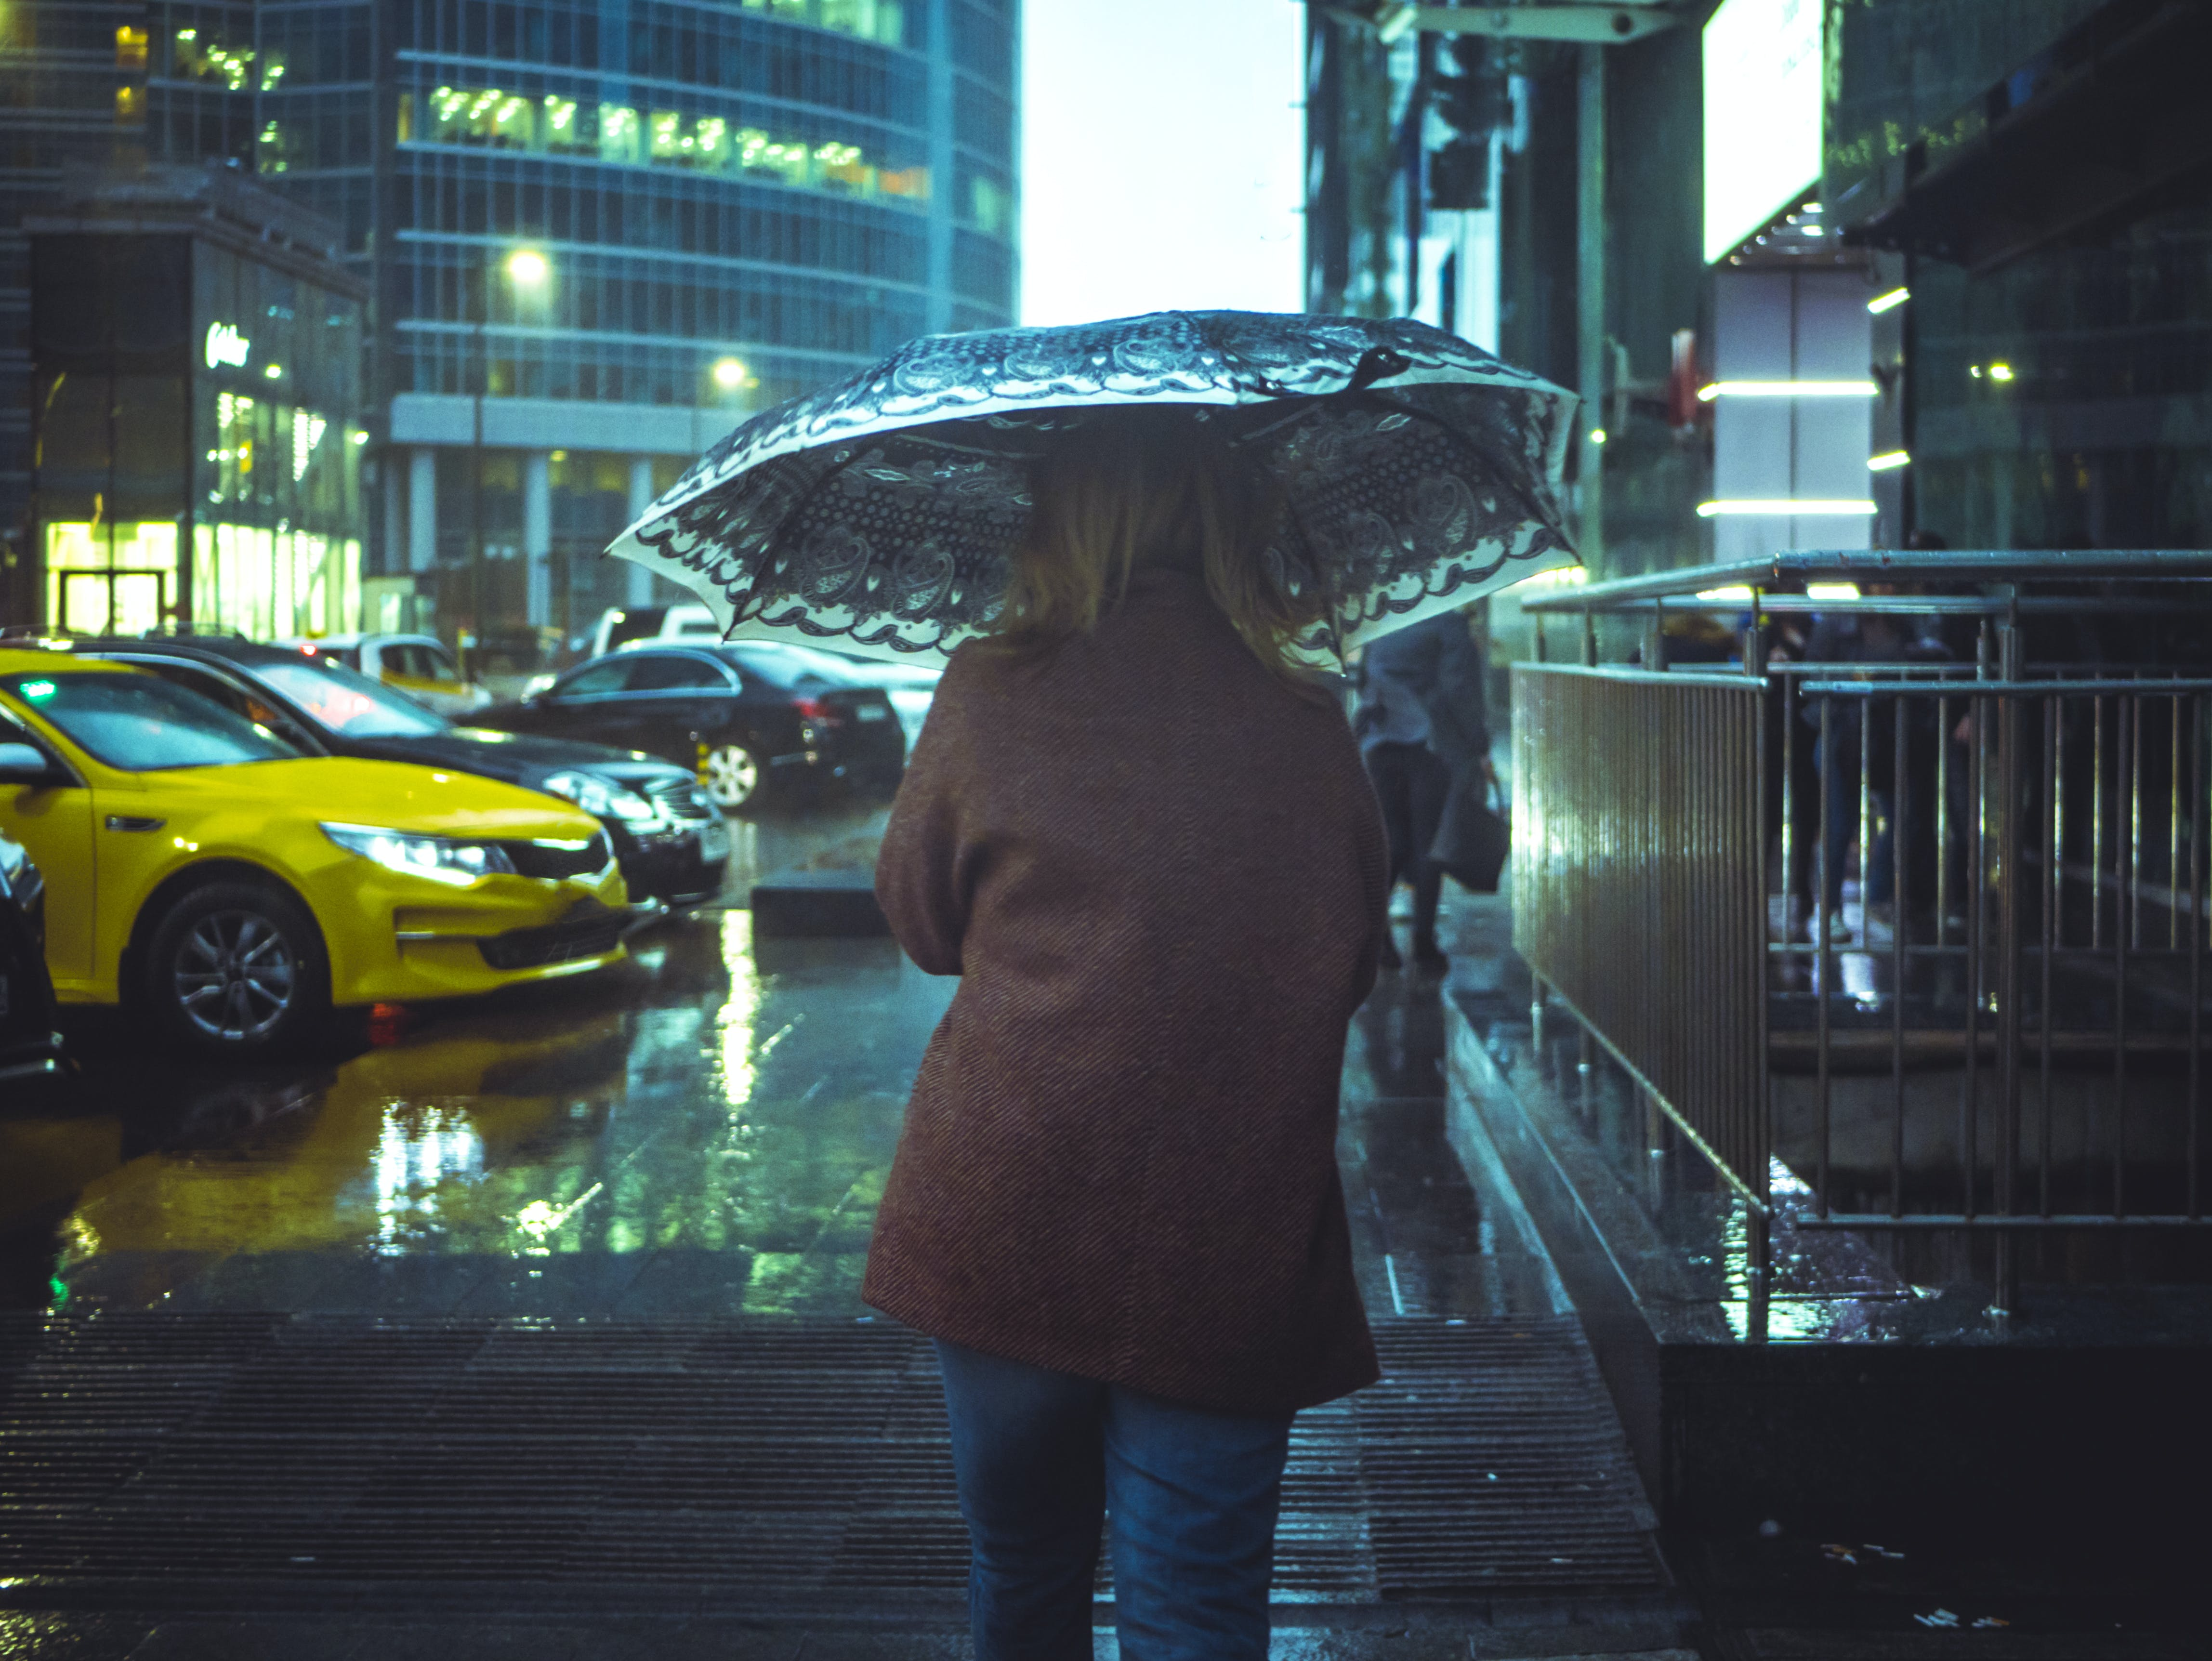 Woman Walking in Street With Umbrella during Nighttime